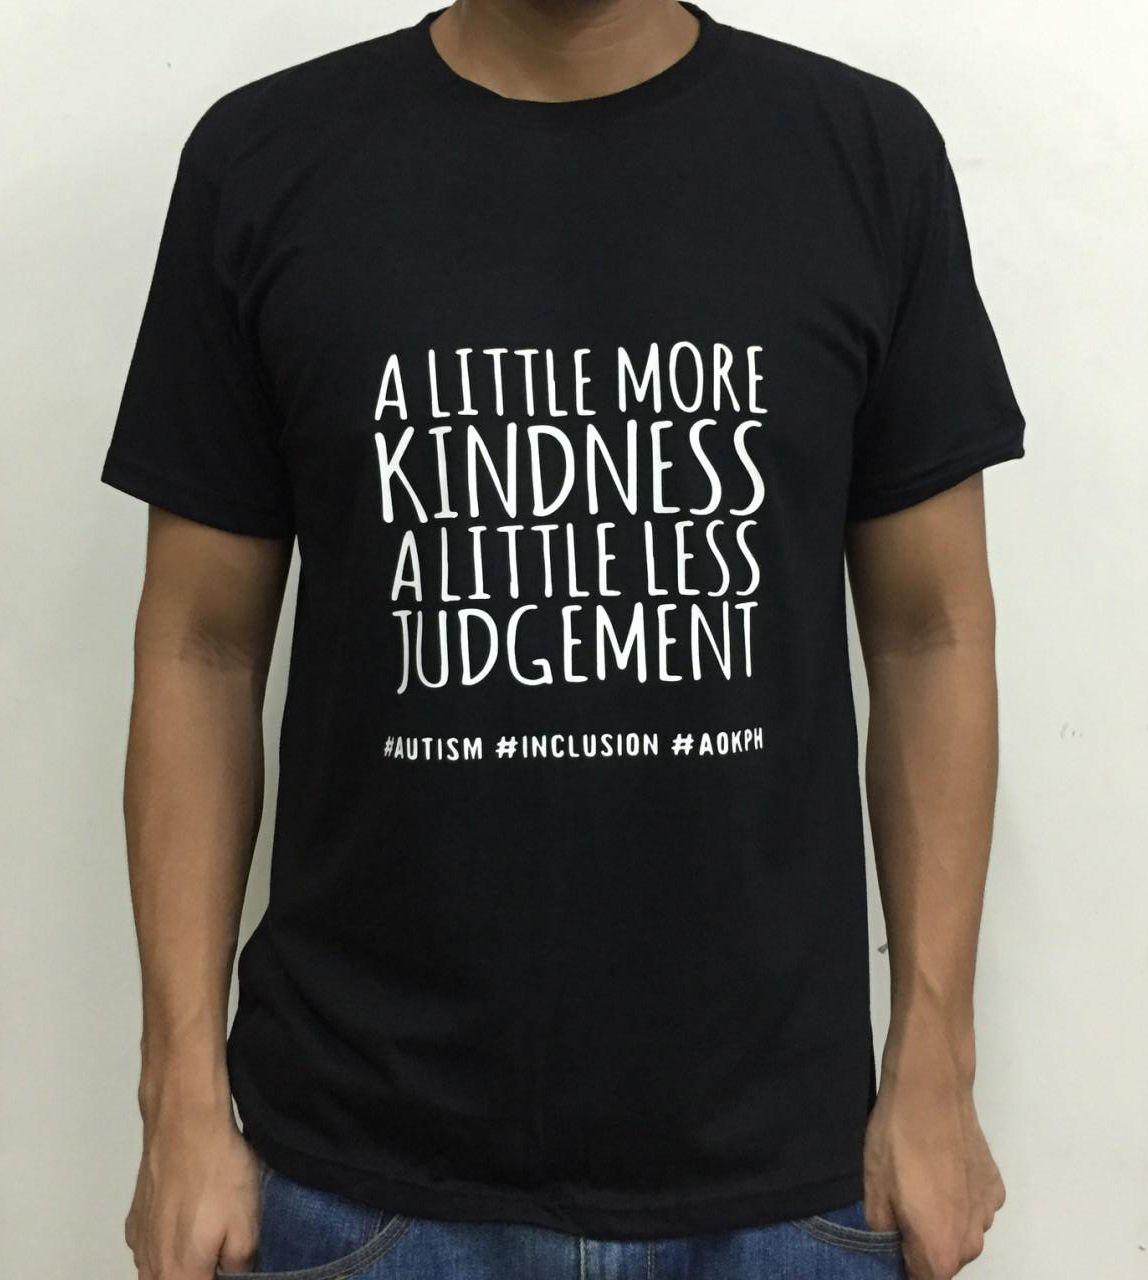 """This cotton shirts bear ASP's """"Hugot"""" lines which celebrate life on the autism spectrum.  """"A little more kindness. A little less judgement."""" Genuine acceptance of people with autism mean accommodation of their deficits which can put them on an equal playing field with the neurotypical.    Order this item at: https://autismall.myshopify.com/products/shirt-a-little-more-kindness"""